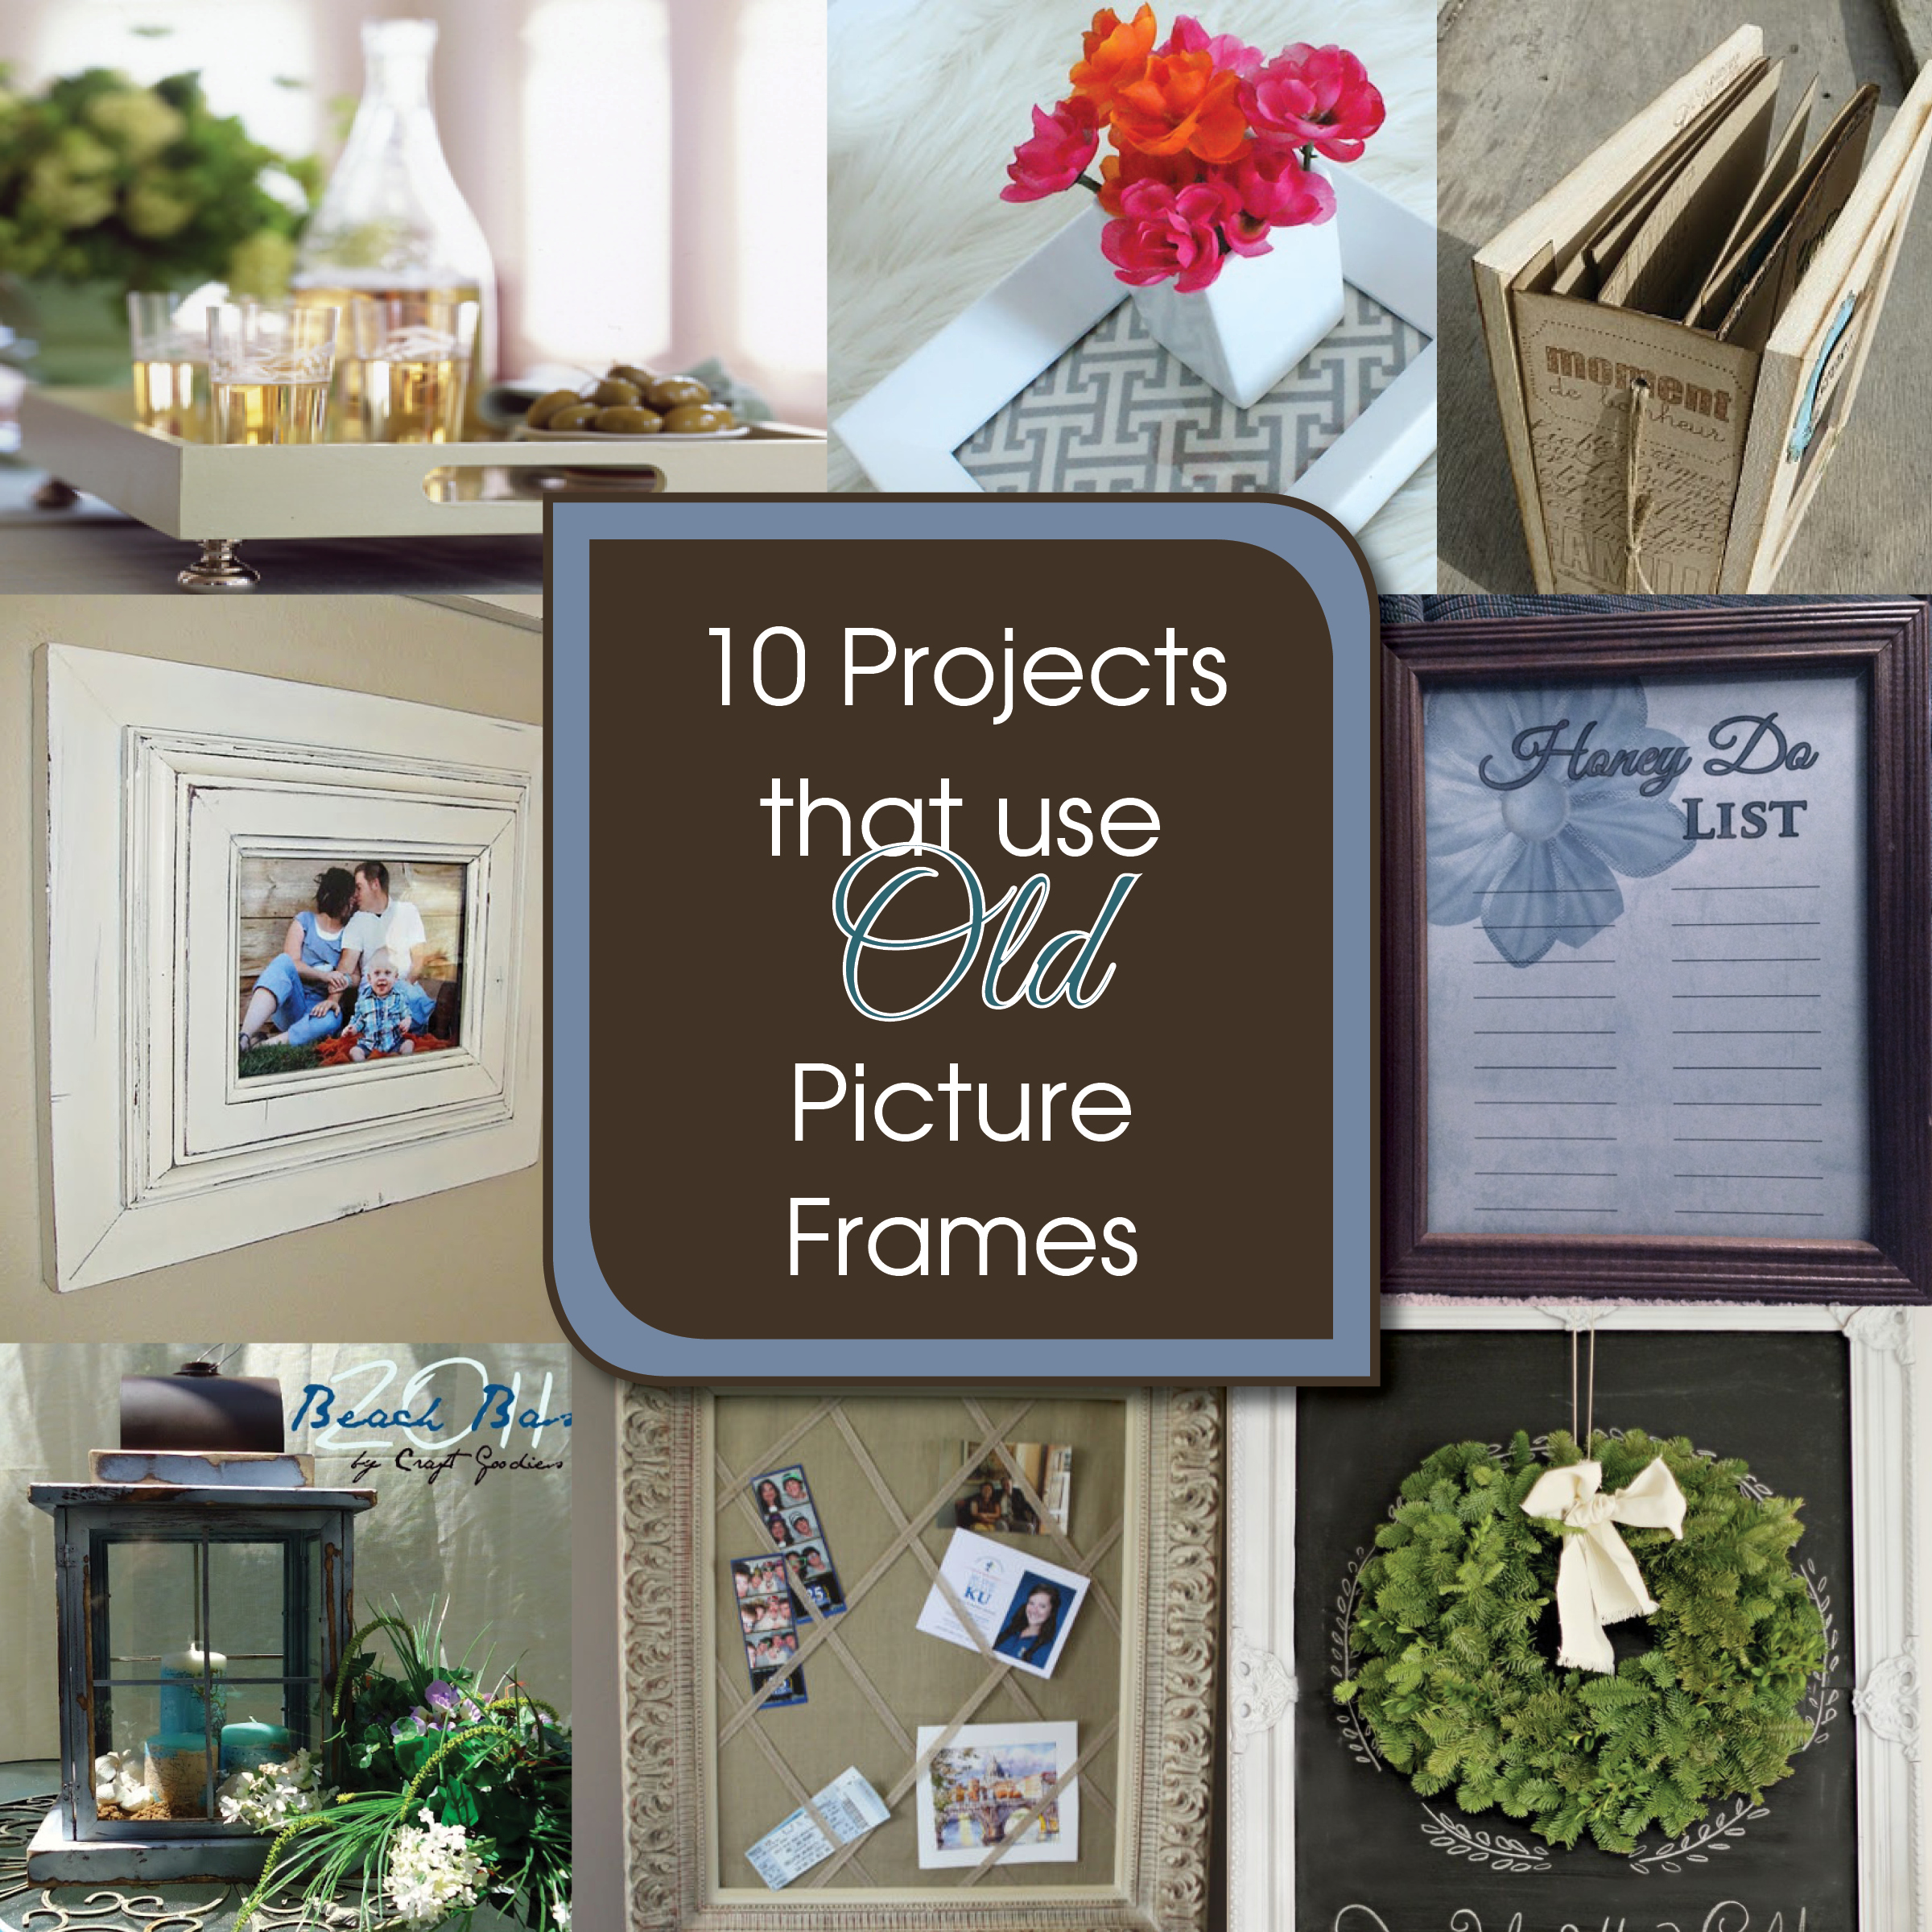 10 diy projects to upcycle old picture frames a free for Diy upcycling projects